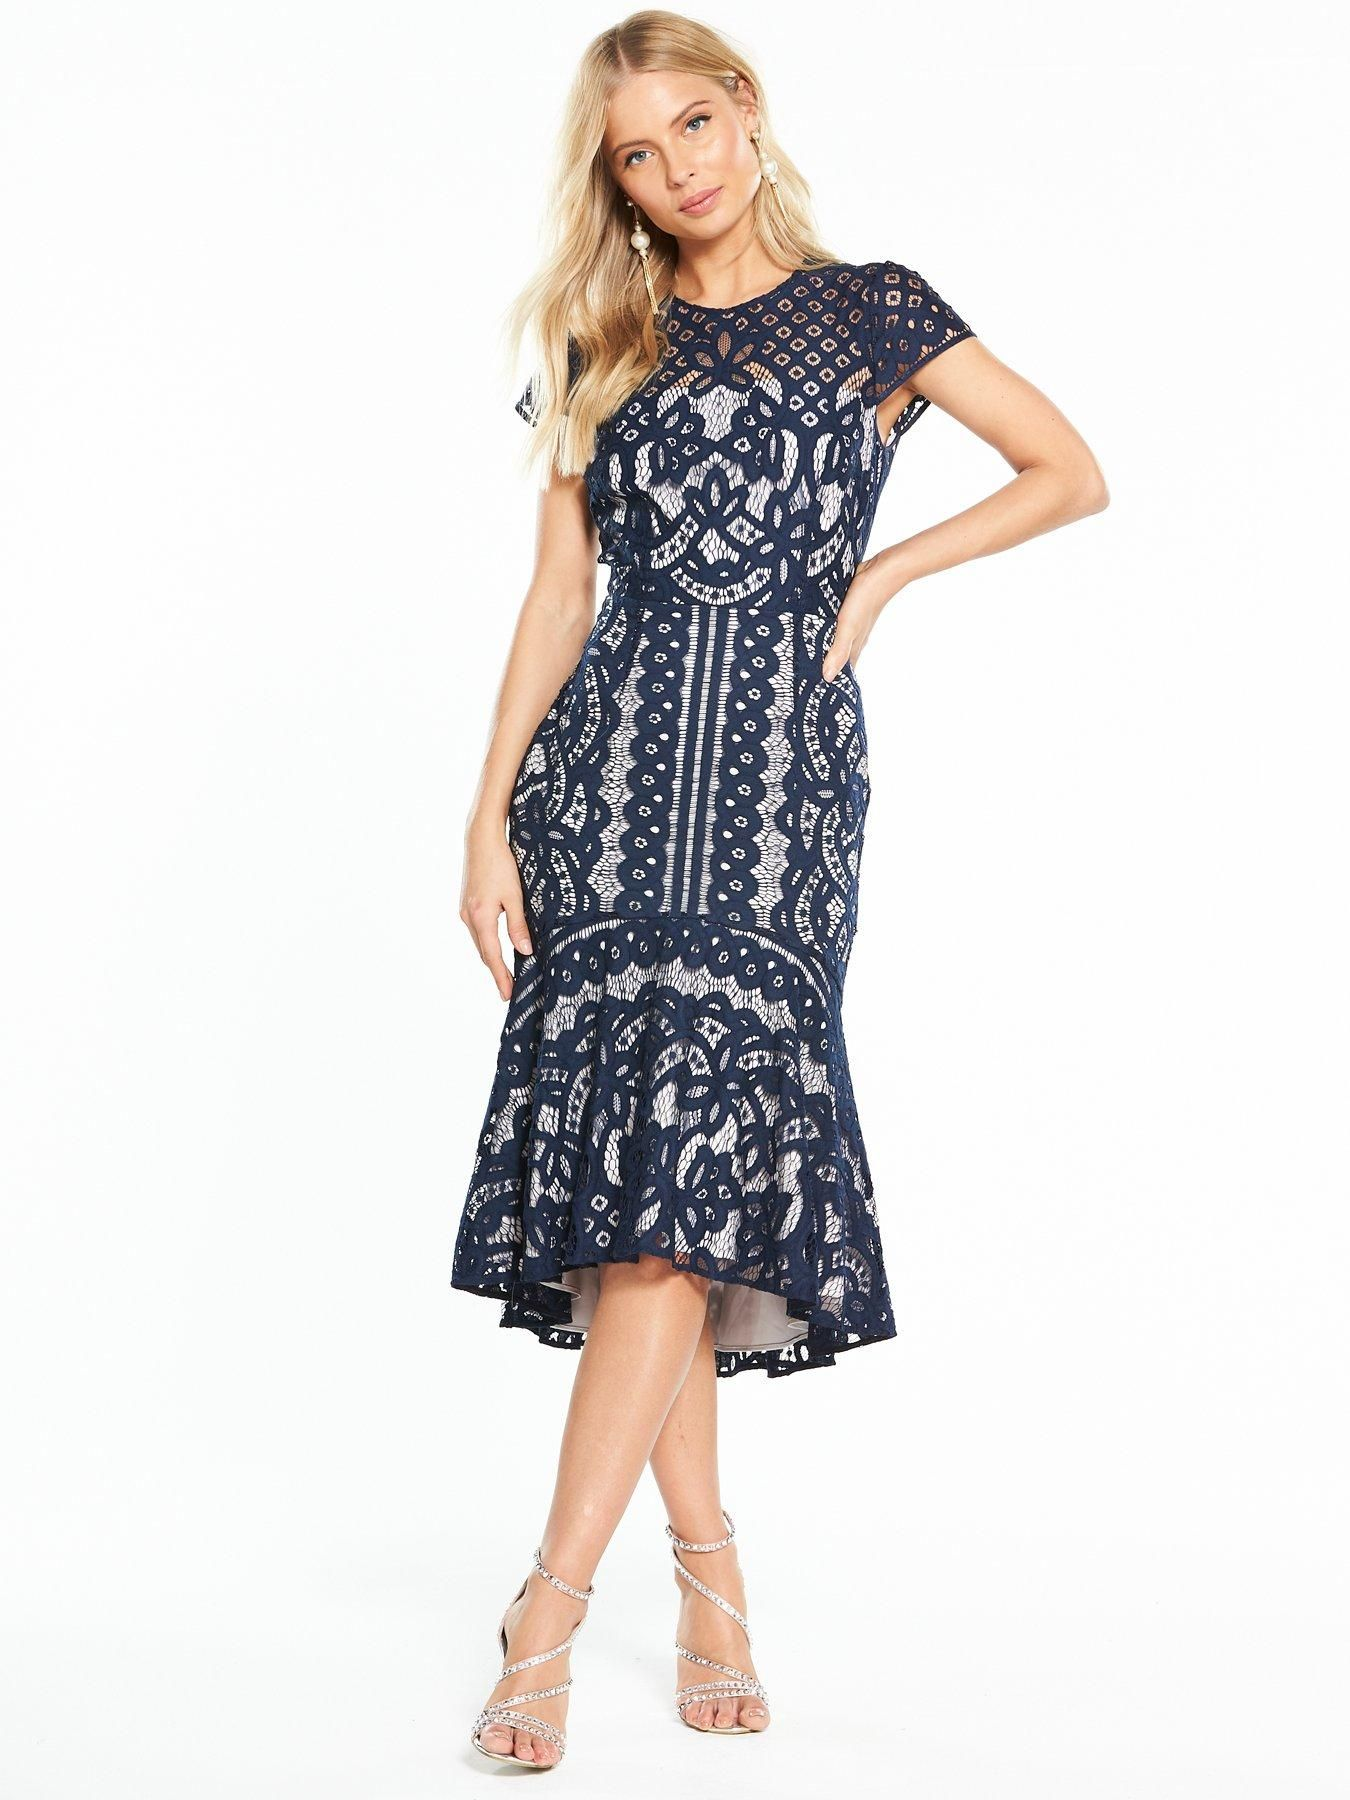 130 This Is Selling Out Fast I Can Find It In A Size 6 Hof 10 On Amazon Bizarrely And 12 Fashion Special Occasion Dresses Dresses [ 1800 x 1350 Pixel ]